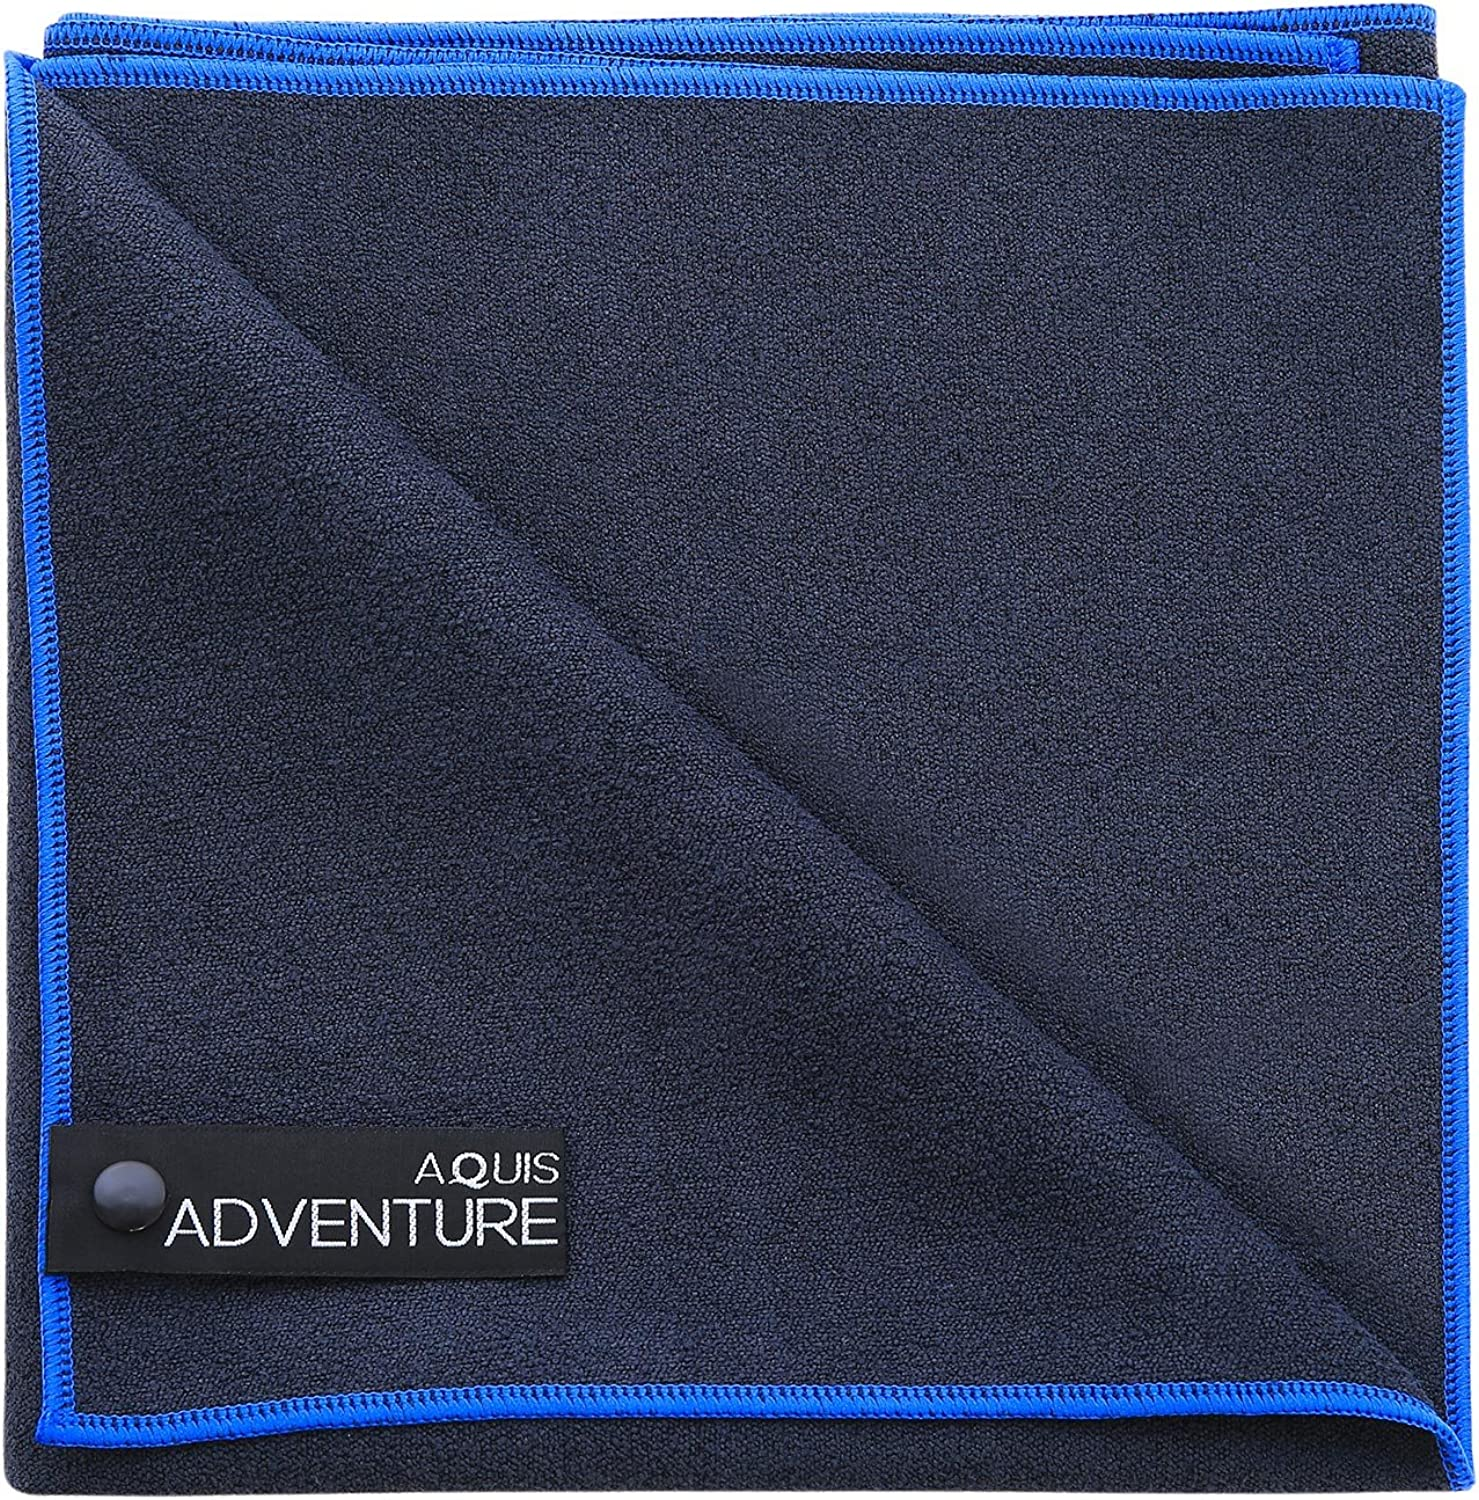 AQUIS - Adventure Microfiber Sports Towel, Quick-Drying Comfort Great for Gym, Travel or Camping Towel, Black with blueee Trim (Large 19 x 39 Inches)